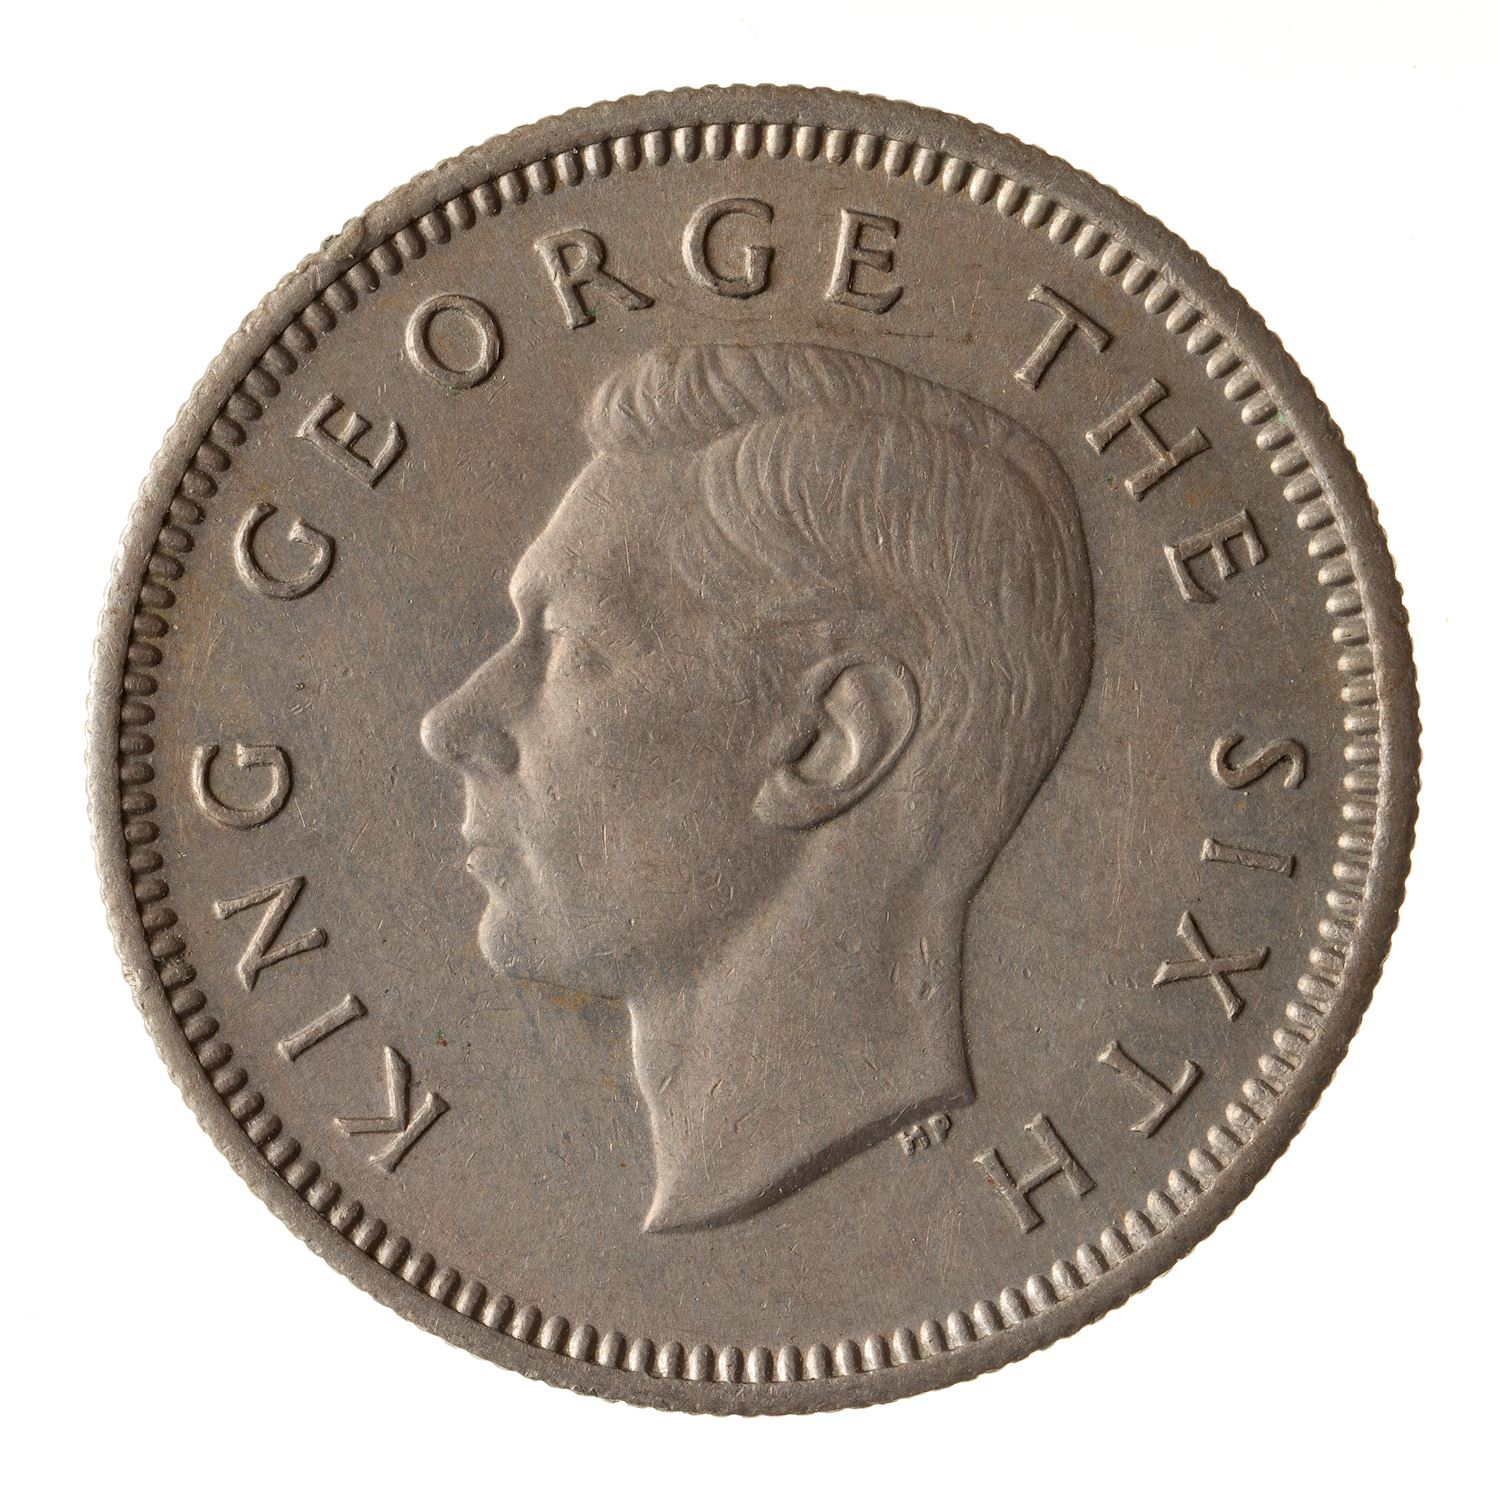 Sixpence: Photo Coin - 6 Pence, New Zealand, 1951